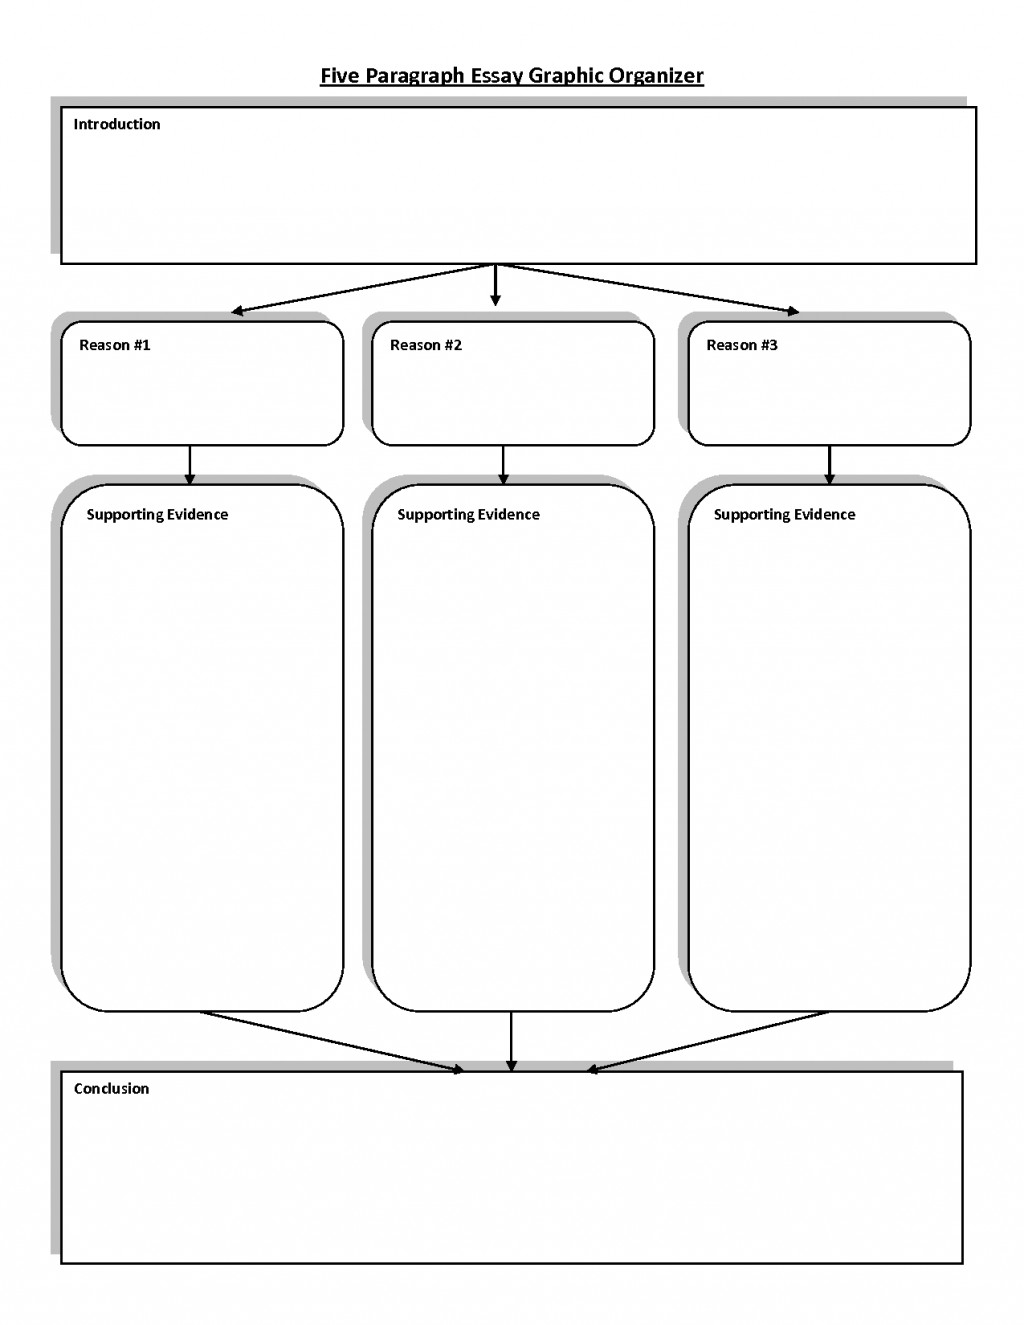 002 Essay Graphic Organizer Example Incredible Narrative Pdf Persuasive Middle School Literary 5th Grade Large